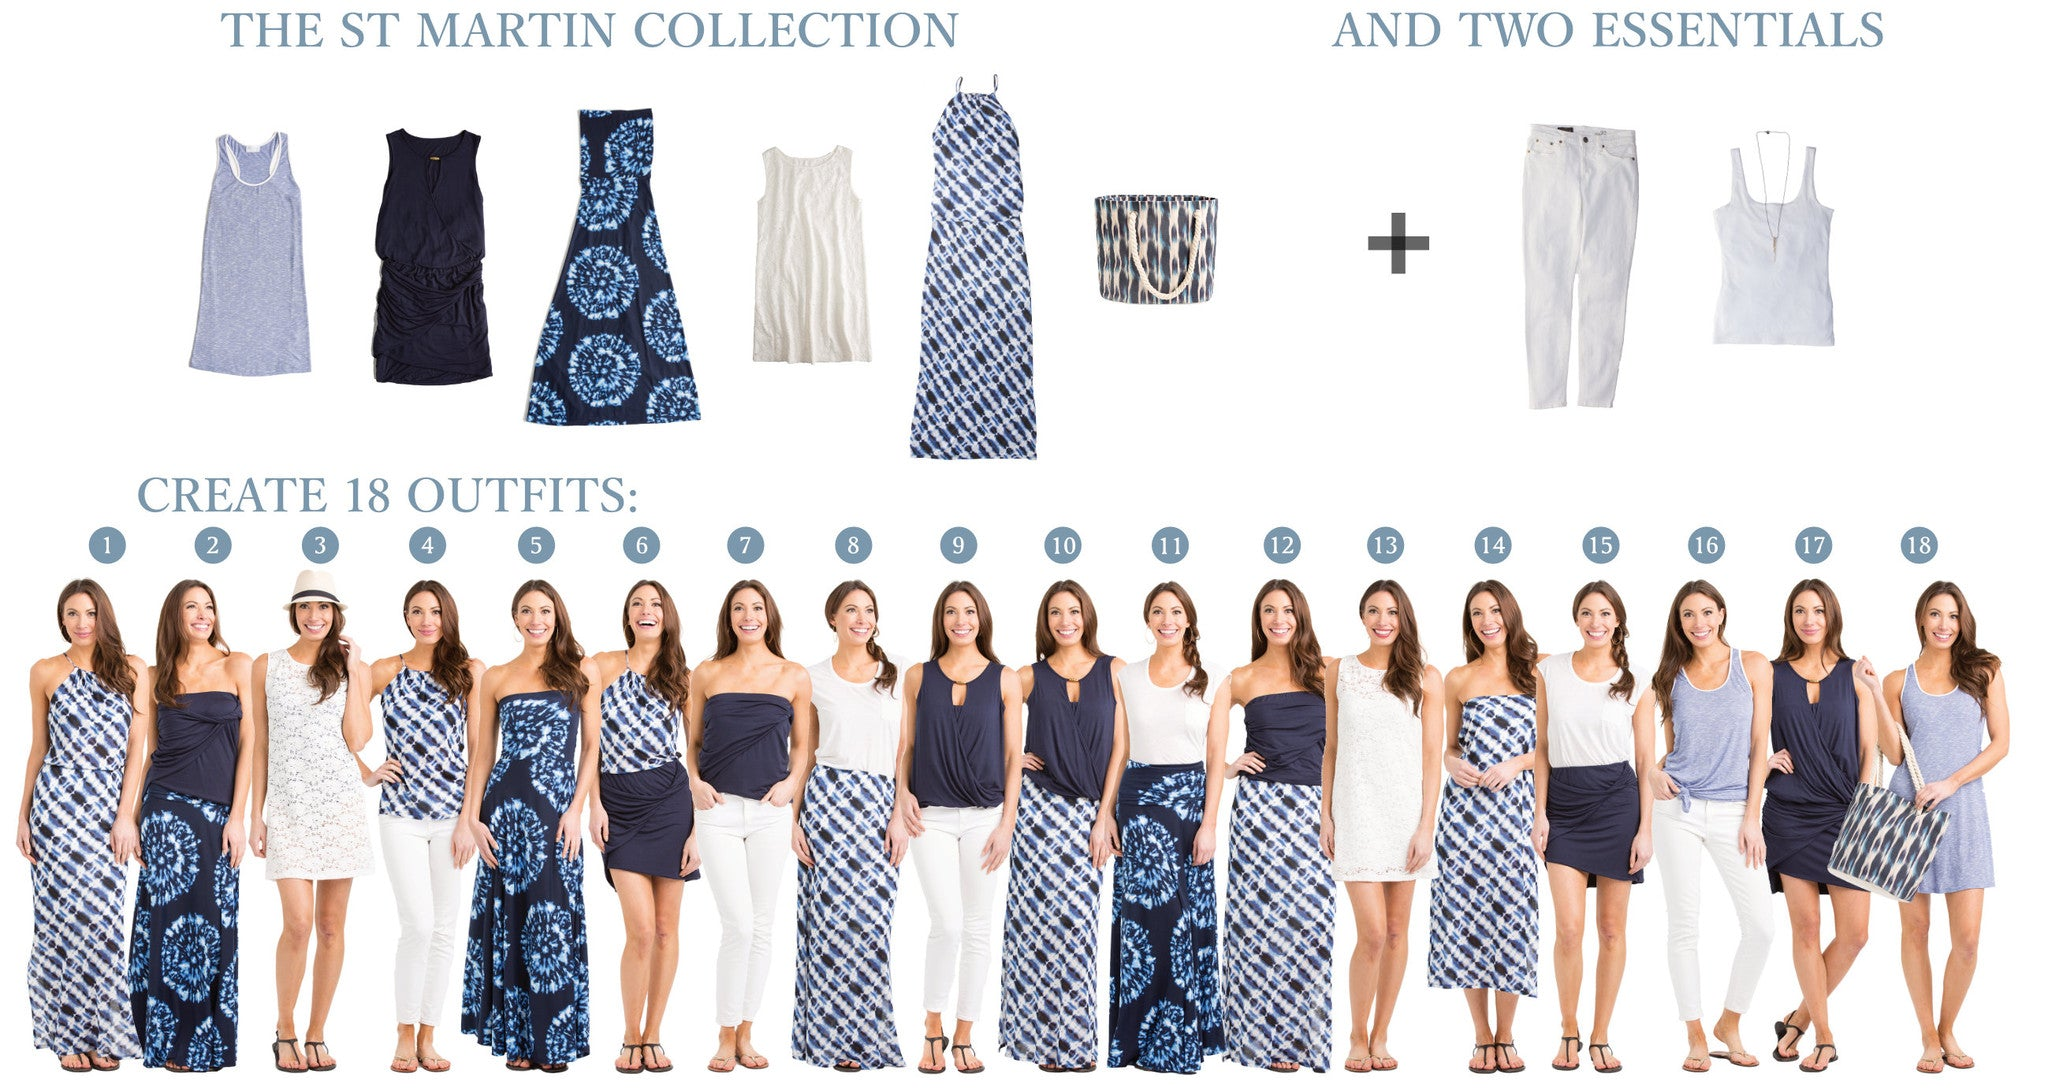 St. Martin Collection: 5 items = 18 outfits